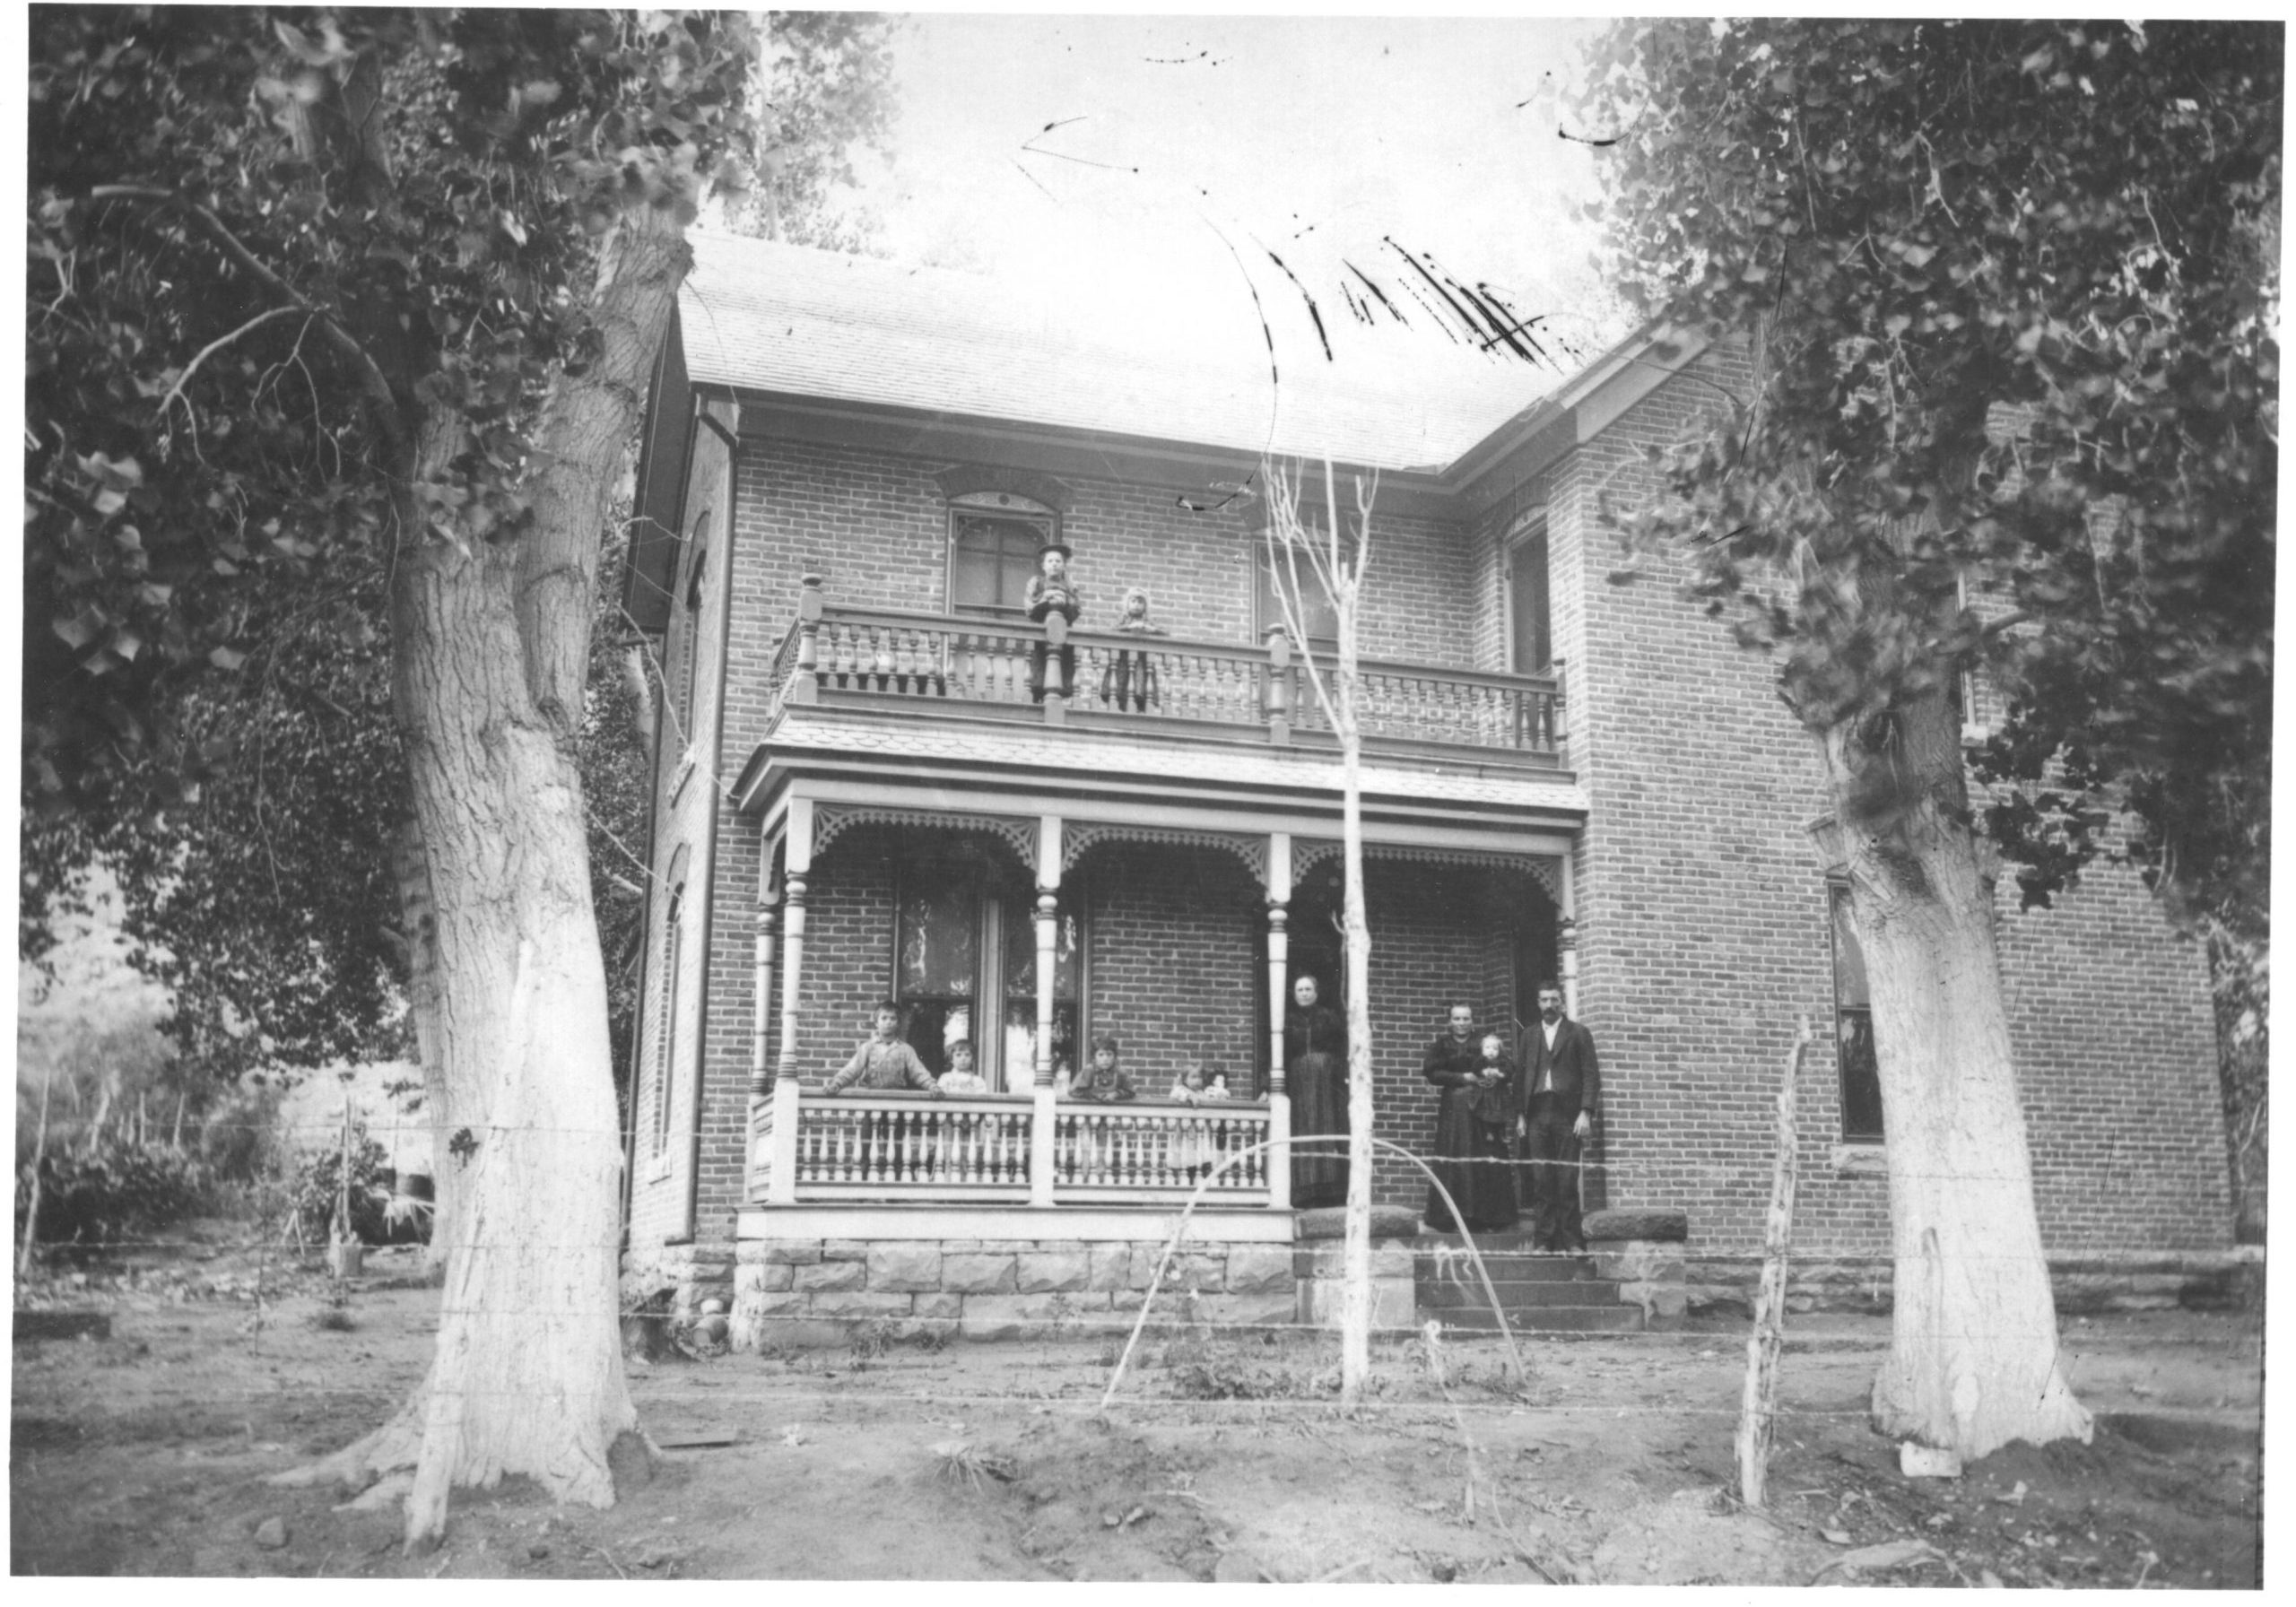 The historic Taylor homestead, now the Moab Springs Ranch.